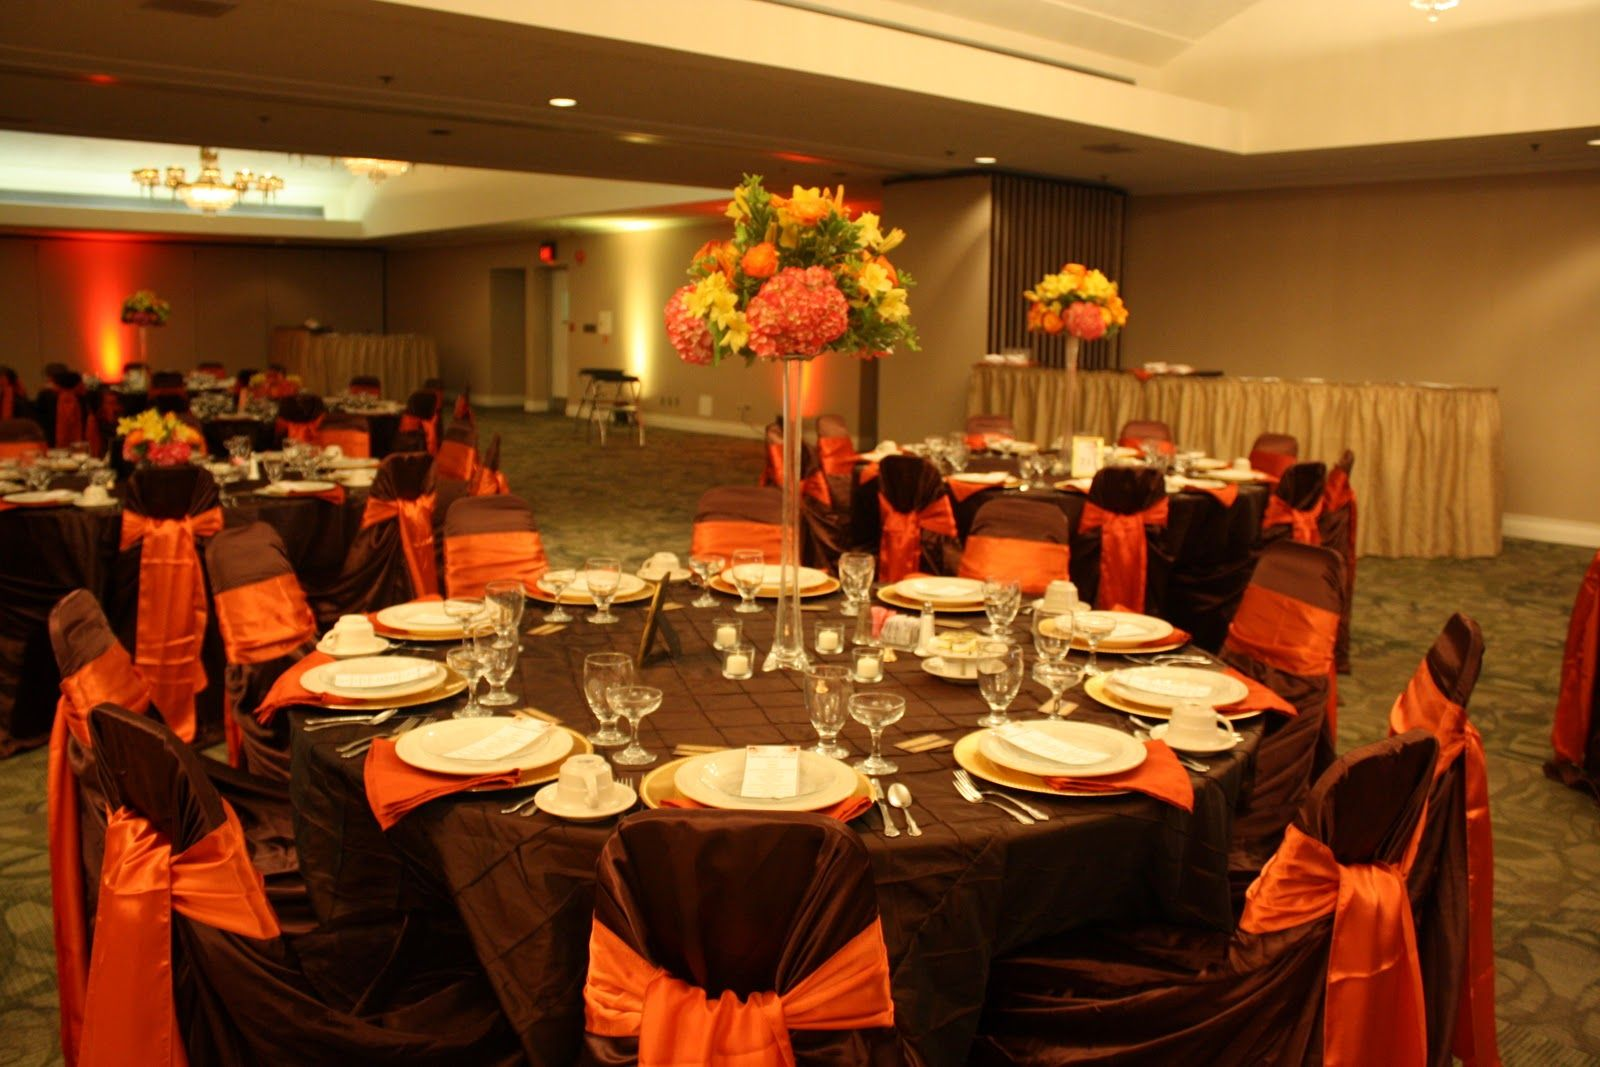 Burnt Orange Wedding Decorations Sash And Gold Charger Plates Napkins